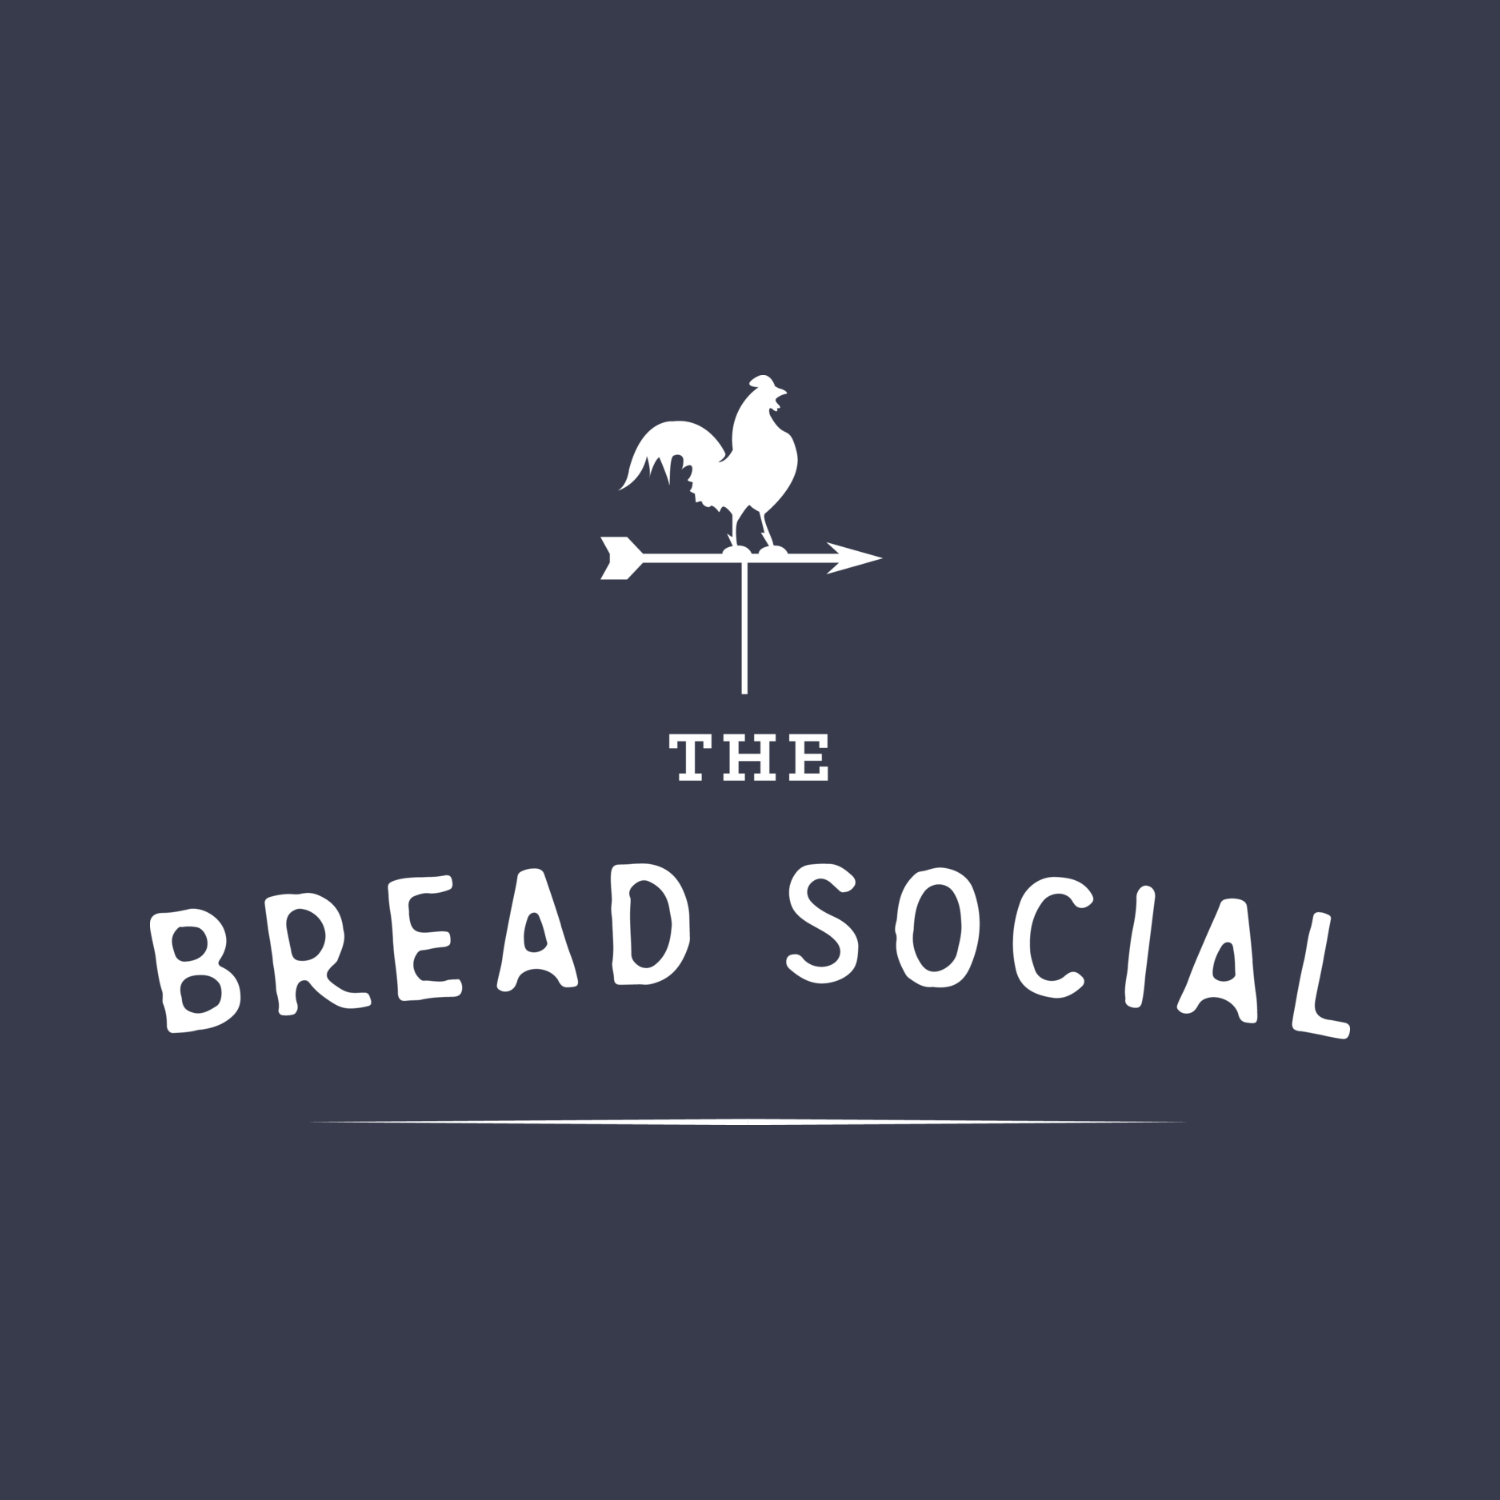 thebreadsocial_logo_1500.png